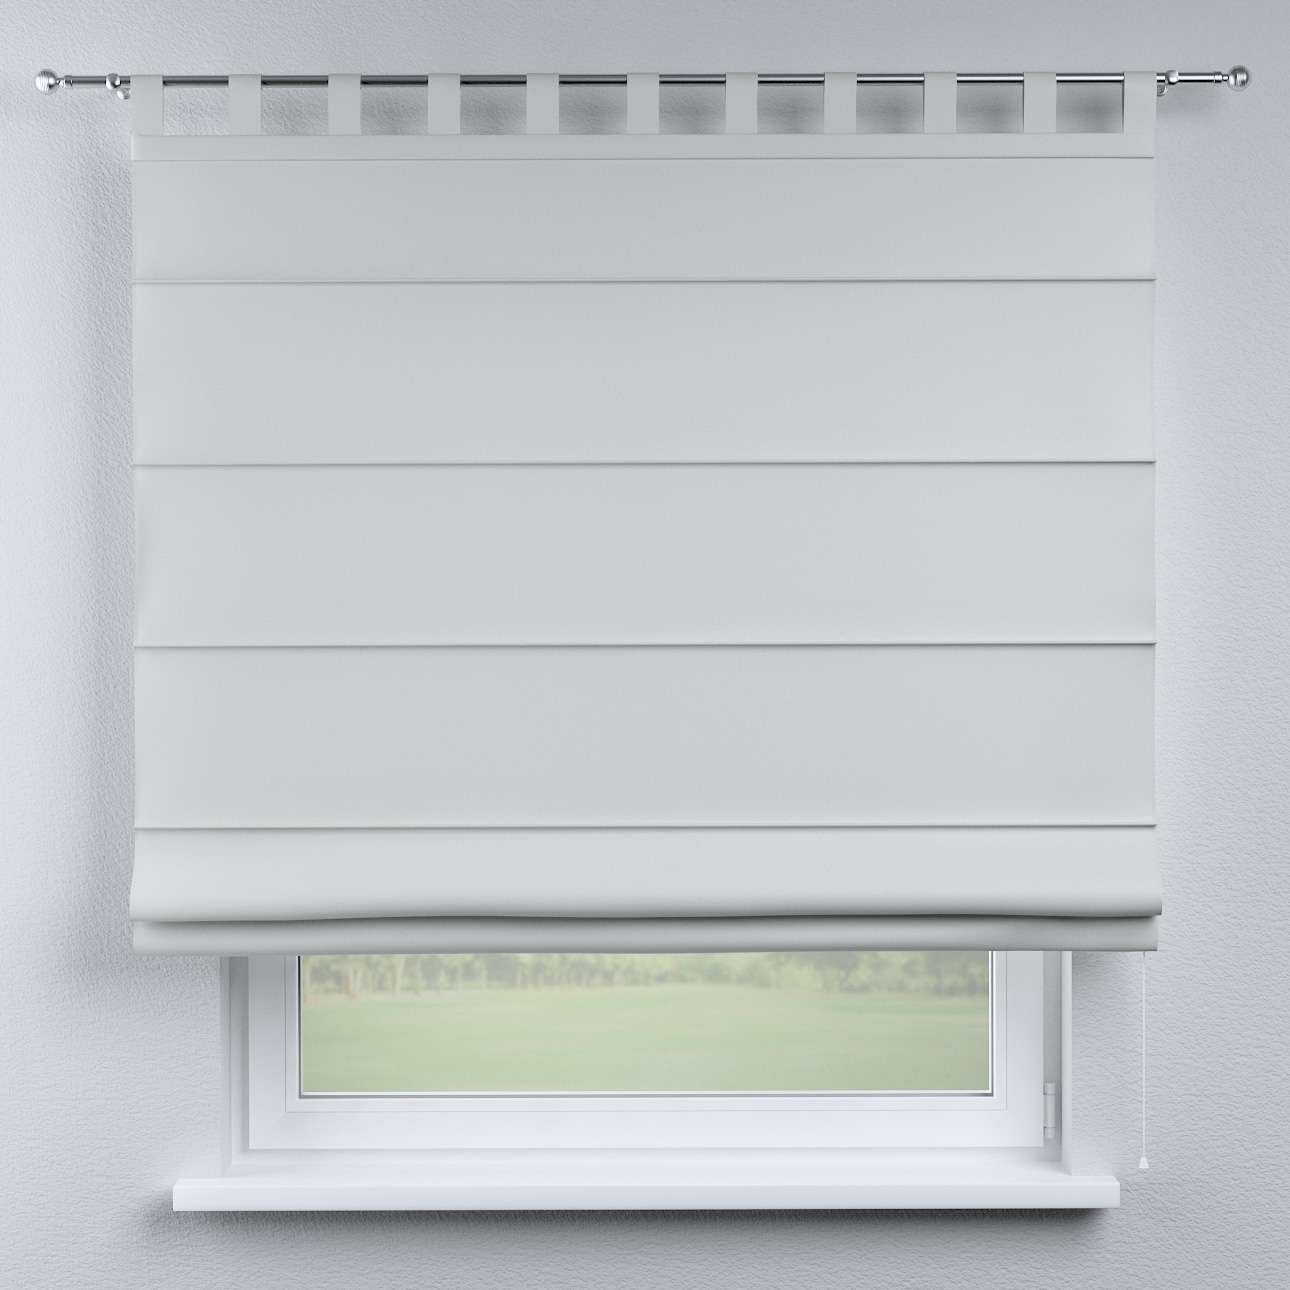 Verona tab top roman blind in collection Damasco, fabric: 141-77